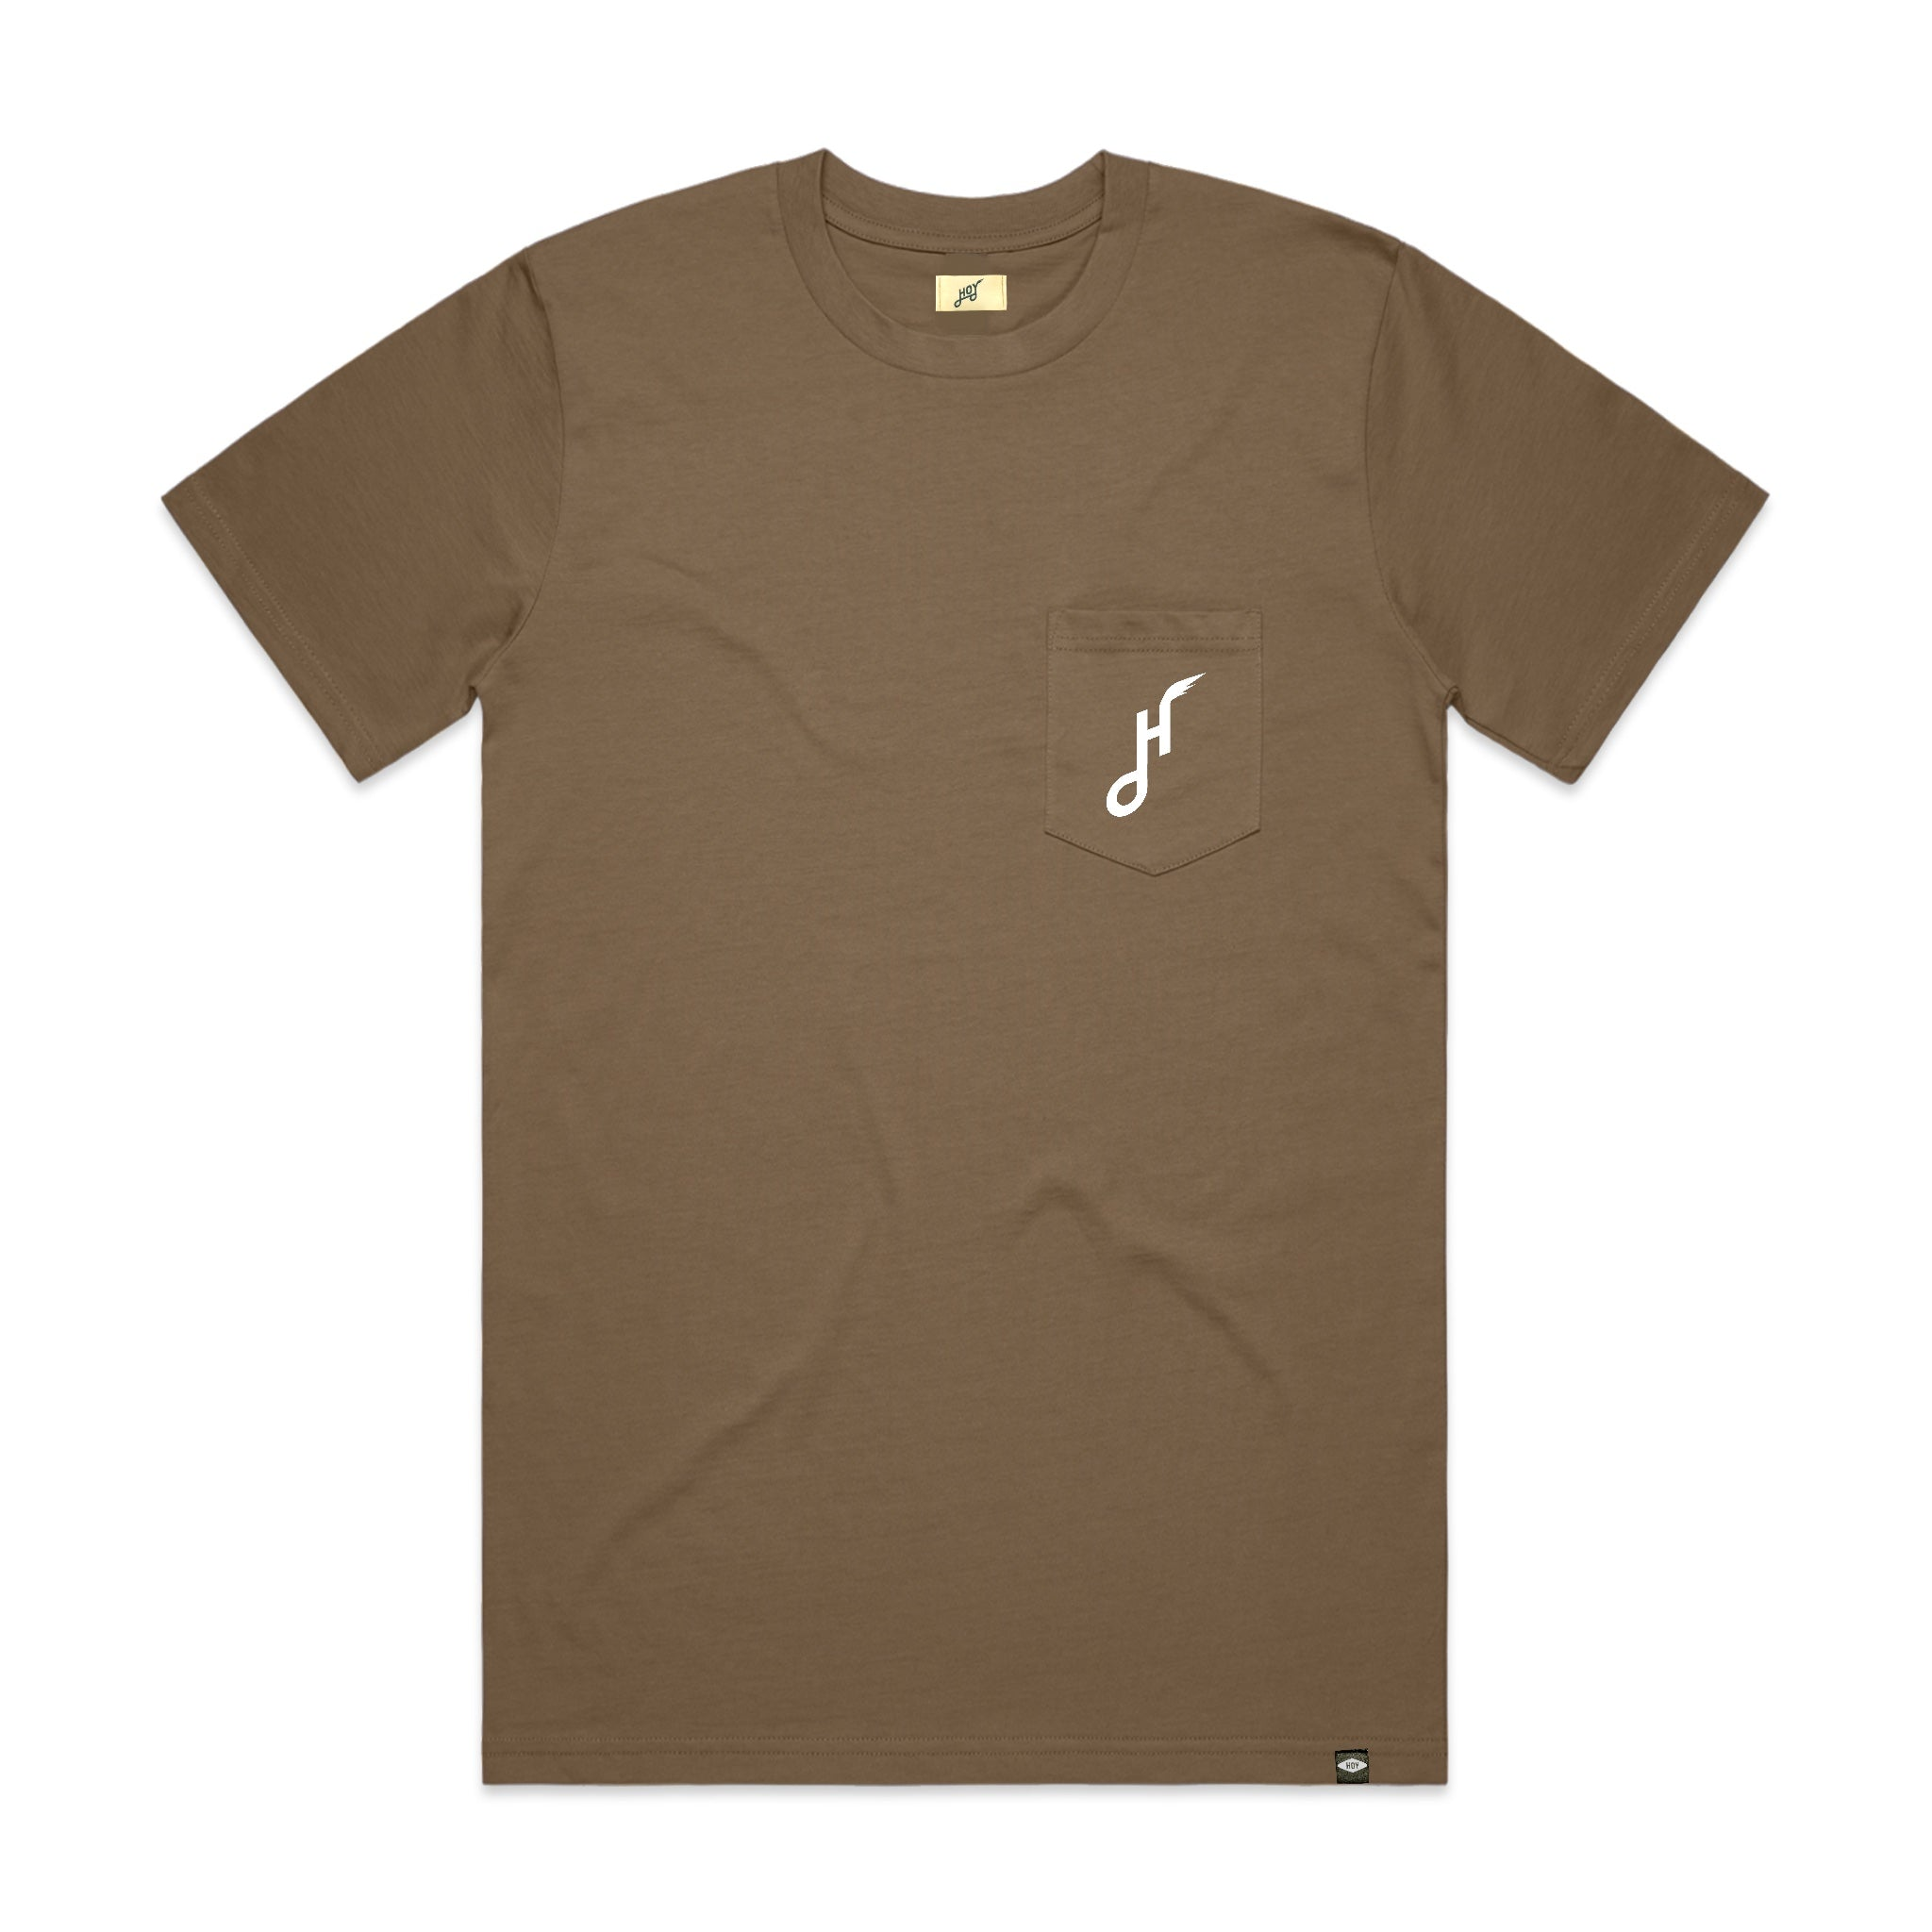 Hoy Downtown Pocket T-shirt - Coffee / Foam